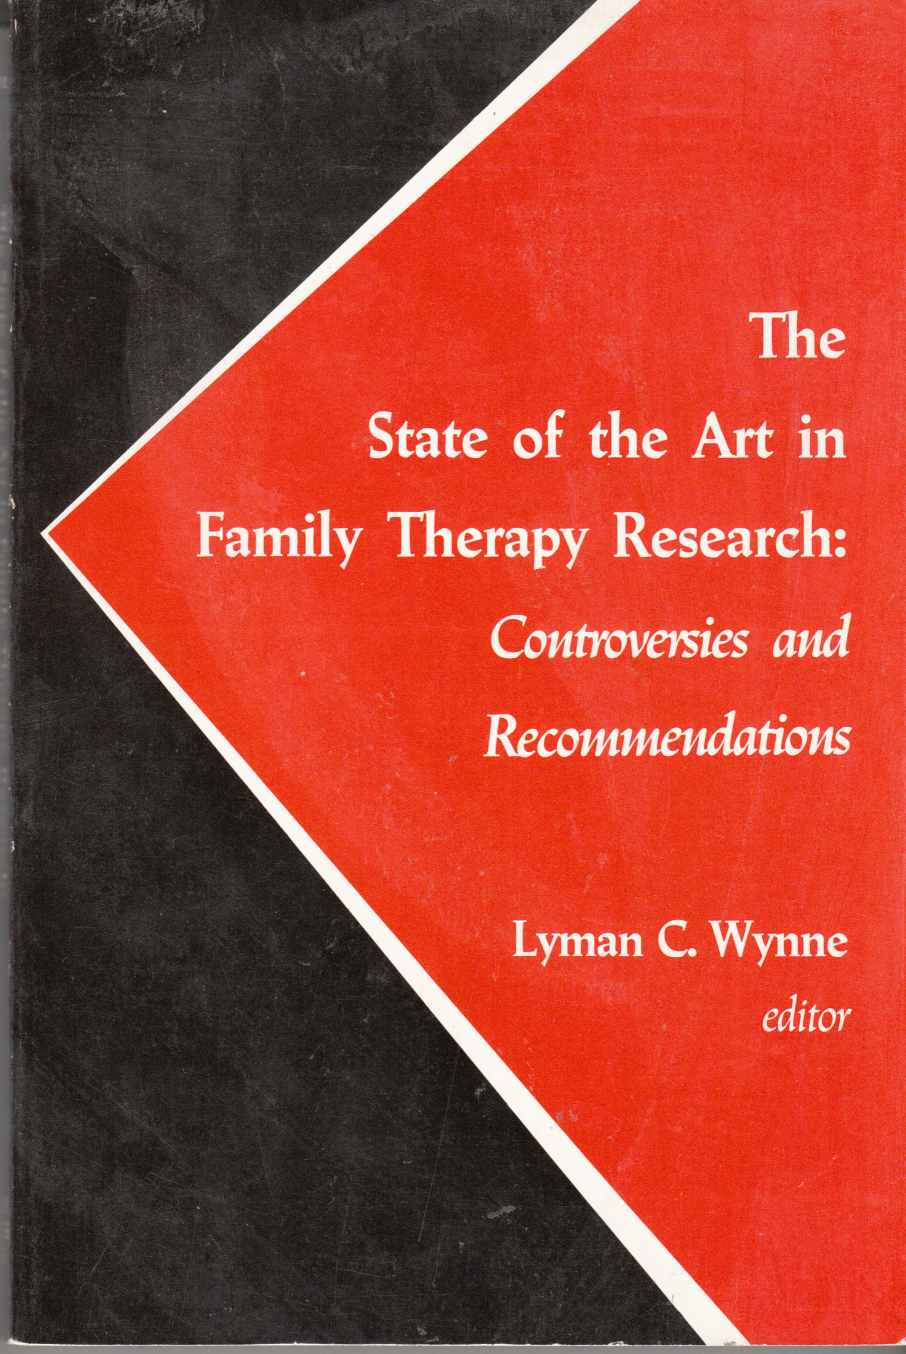 Image for The State of the Art in Family Therapy Research Controversies and Recommendations